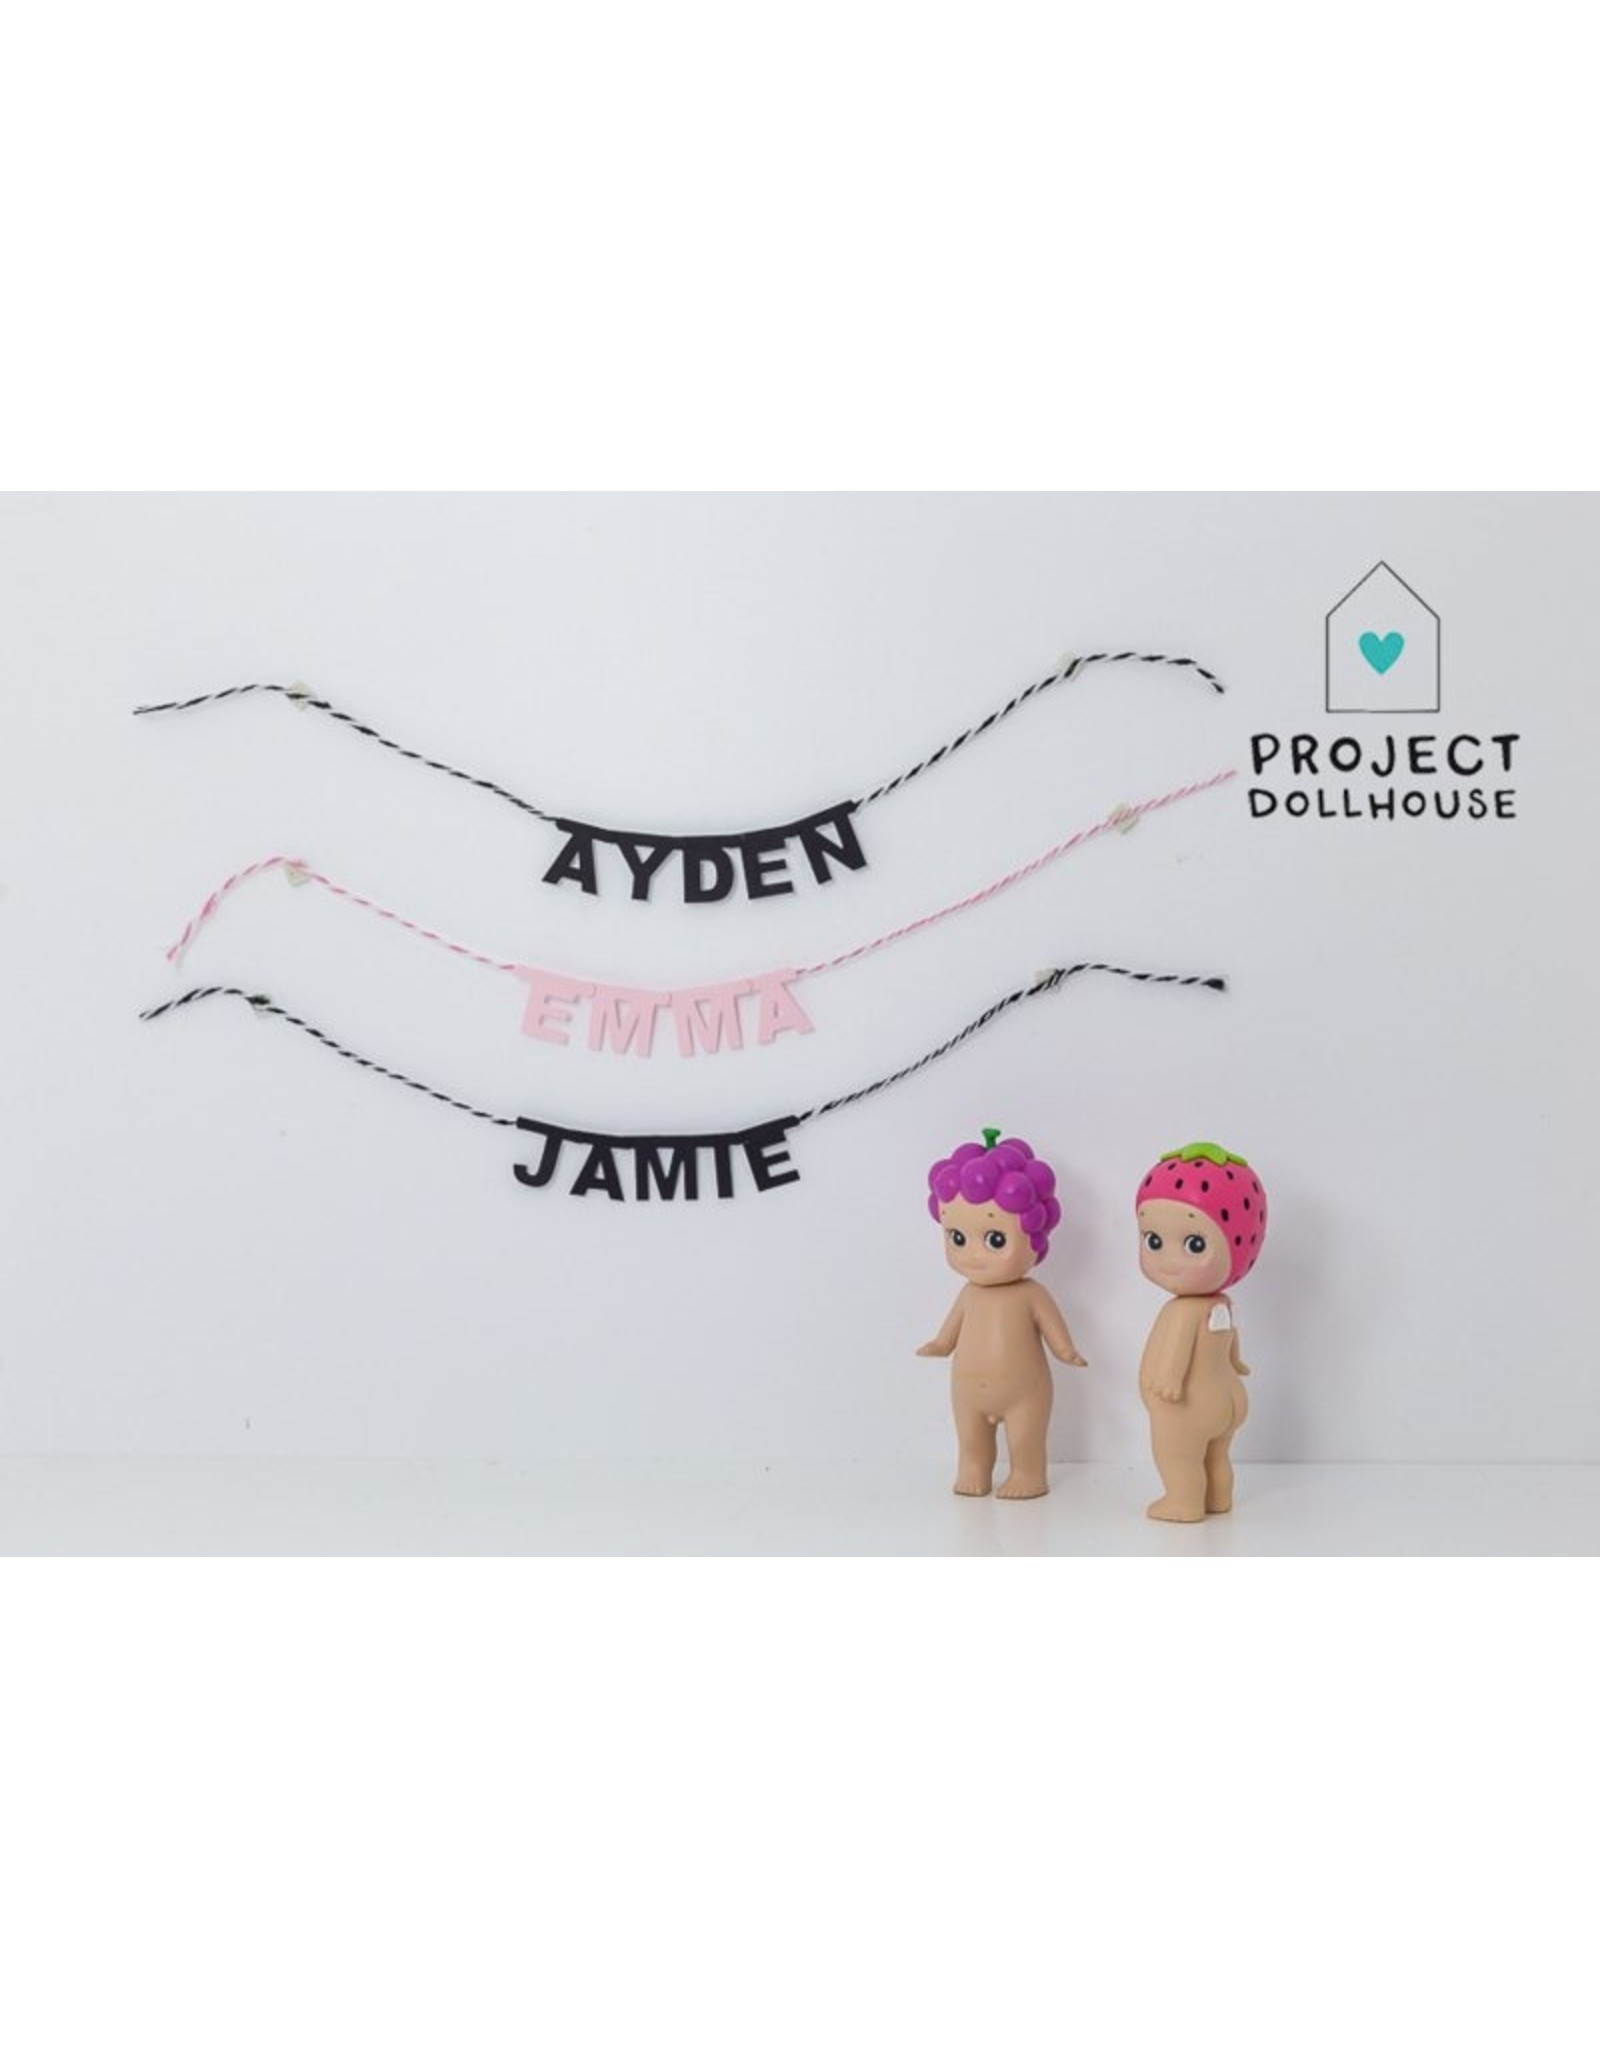 Project Dollhouse Personal Name Garland